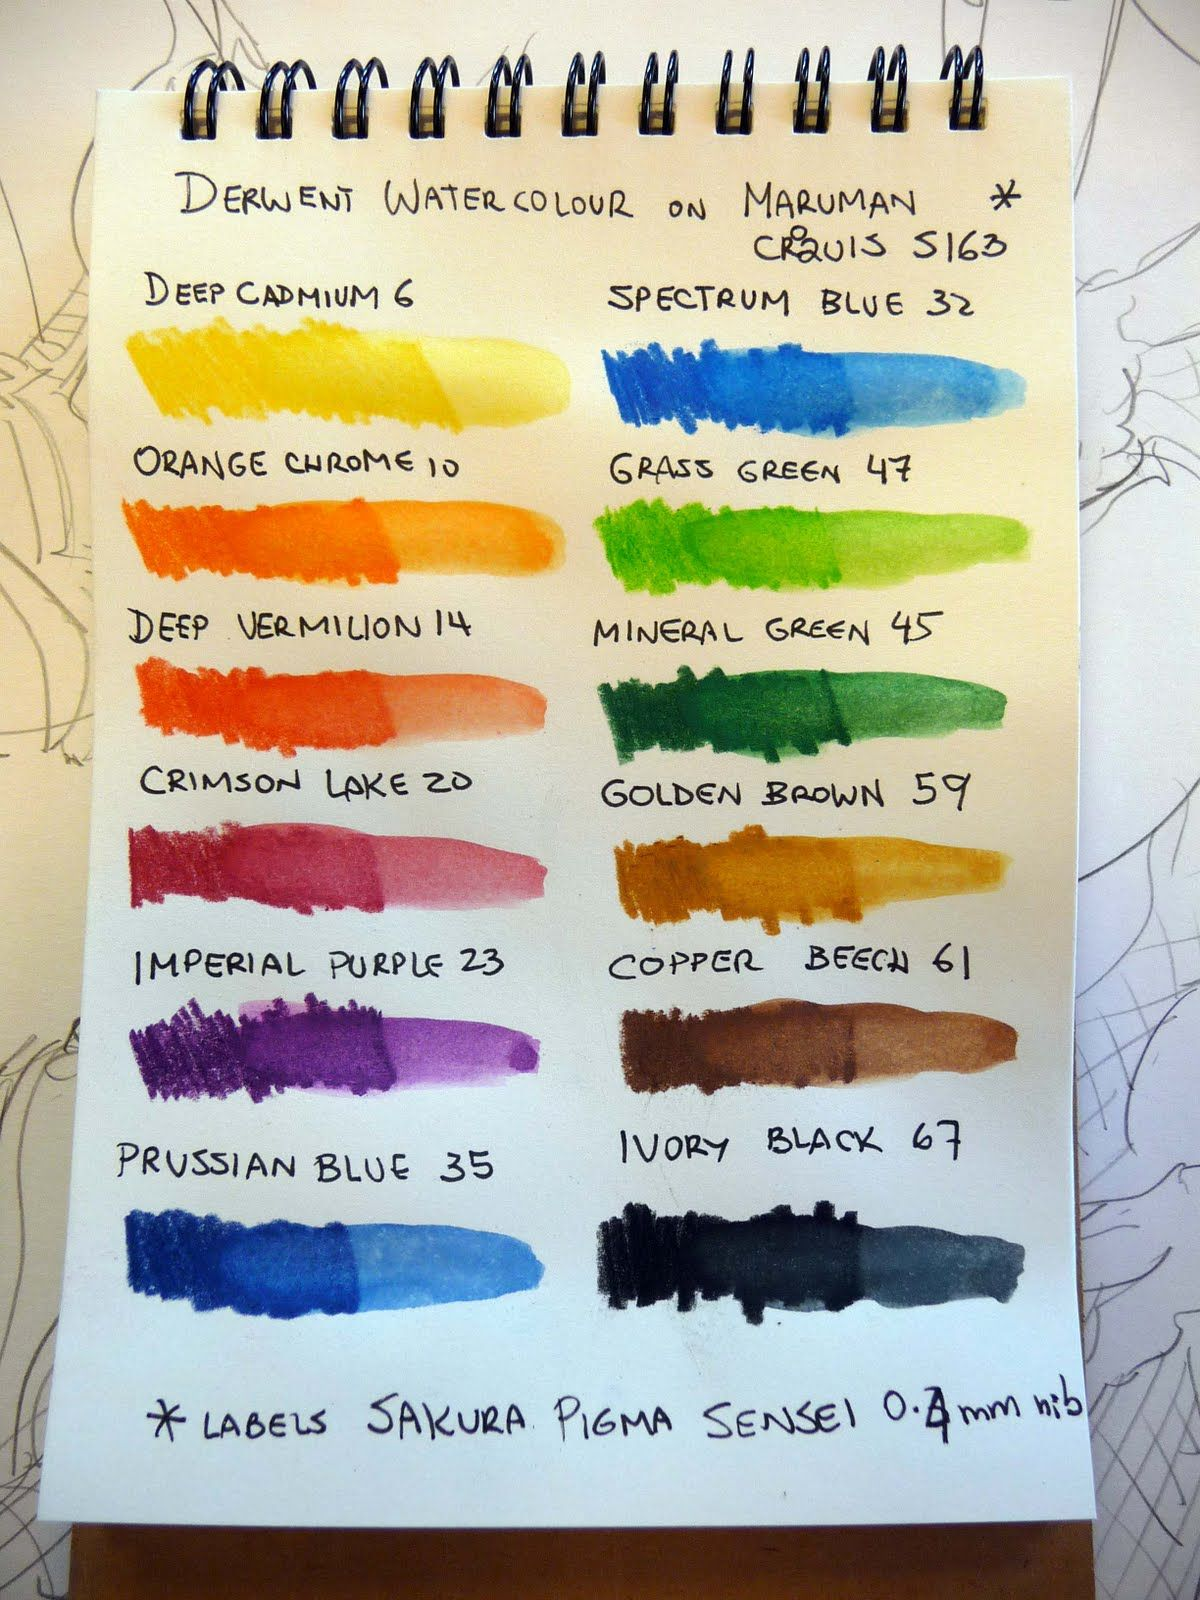 Derwent Watercolor Pencil Chart To Make For Reference